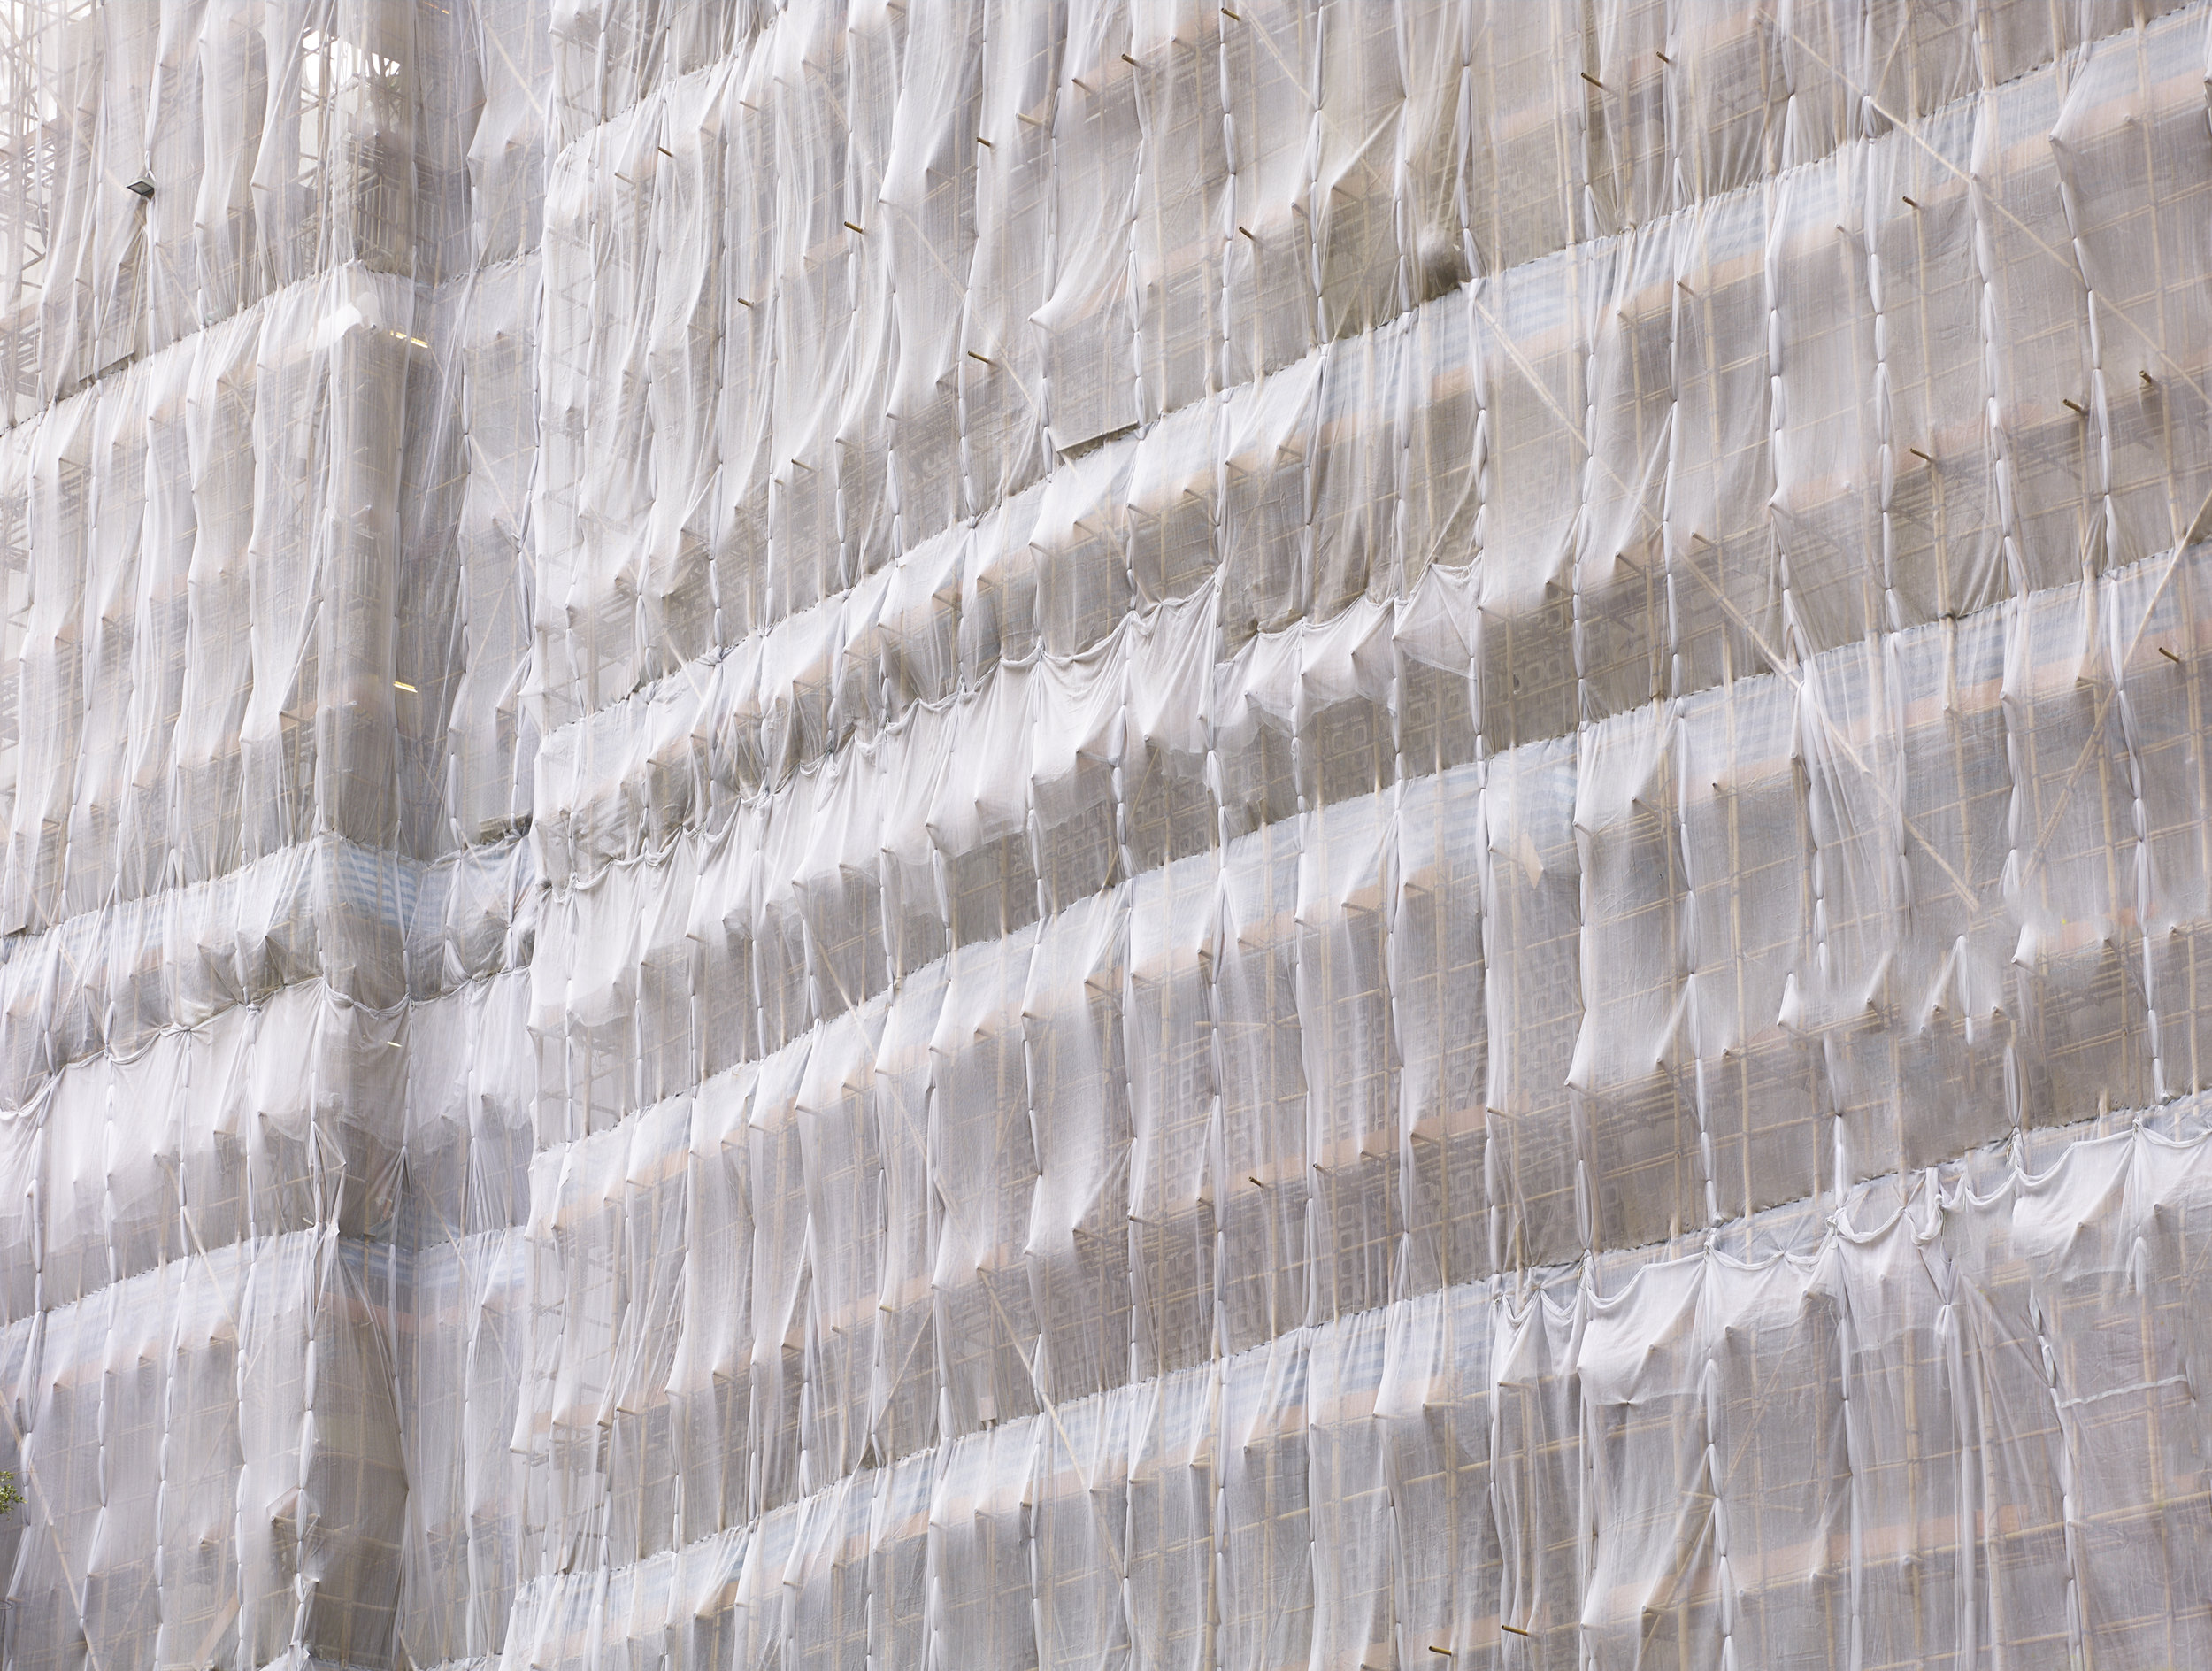 White Cocoon #11, Hong Kong - 2015